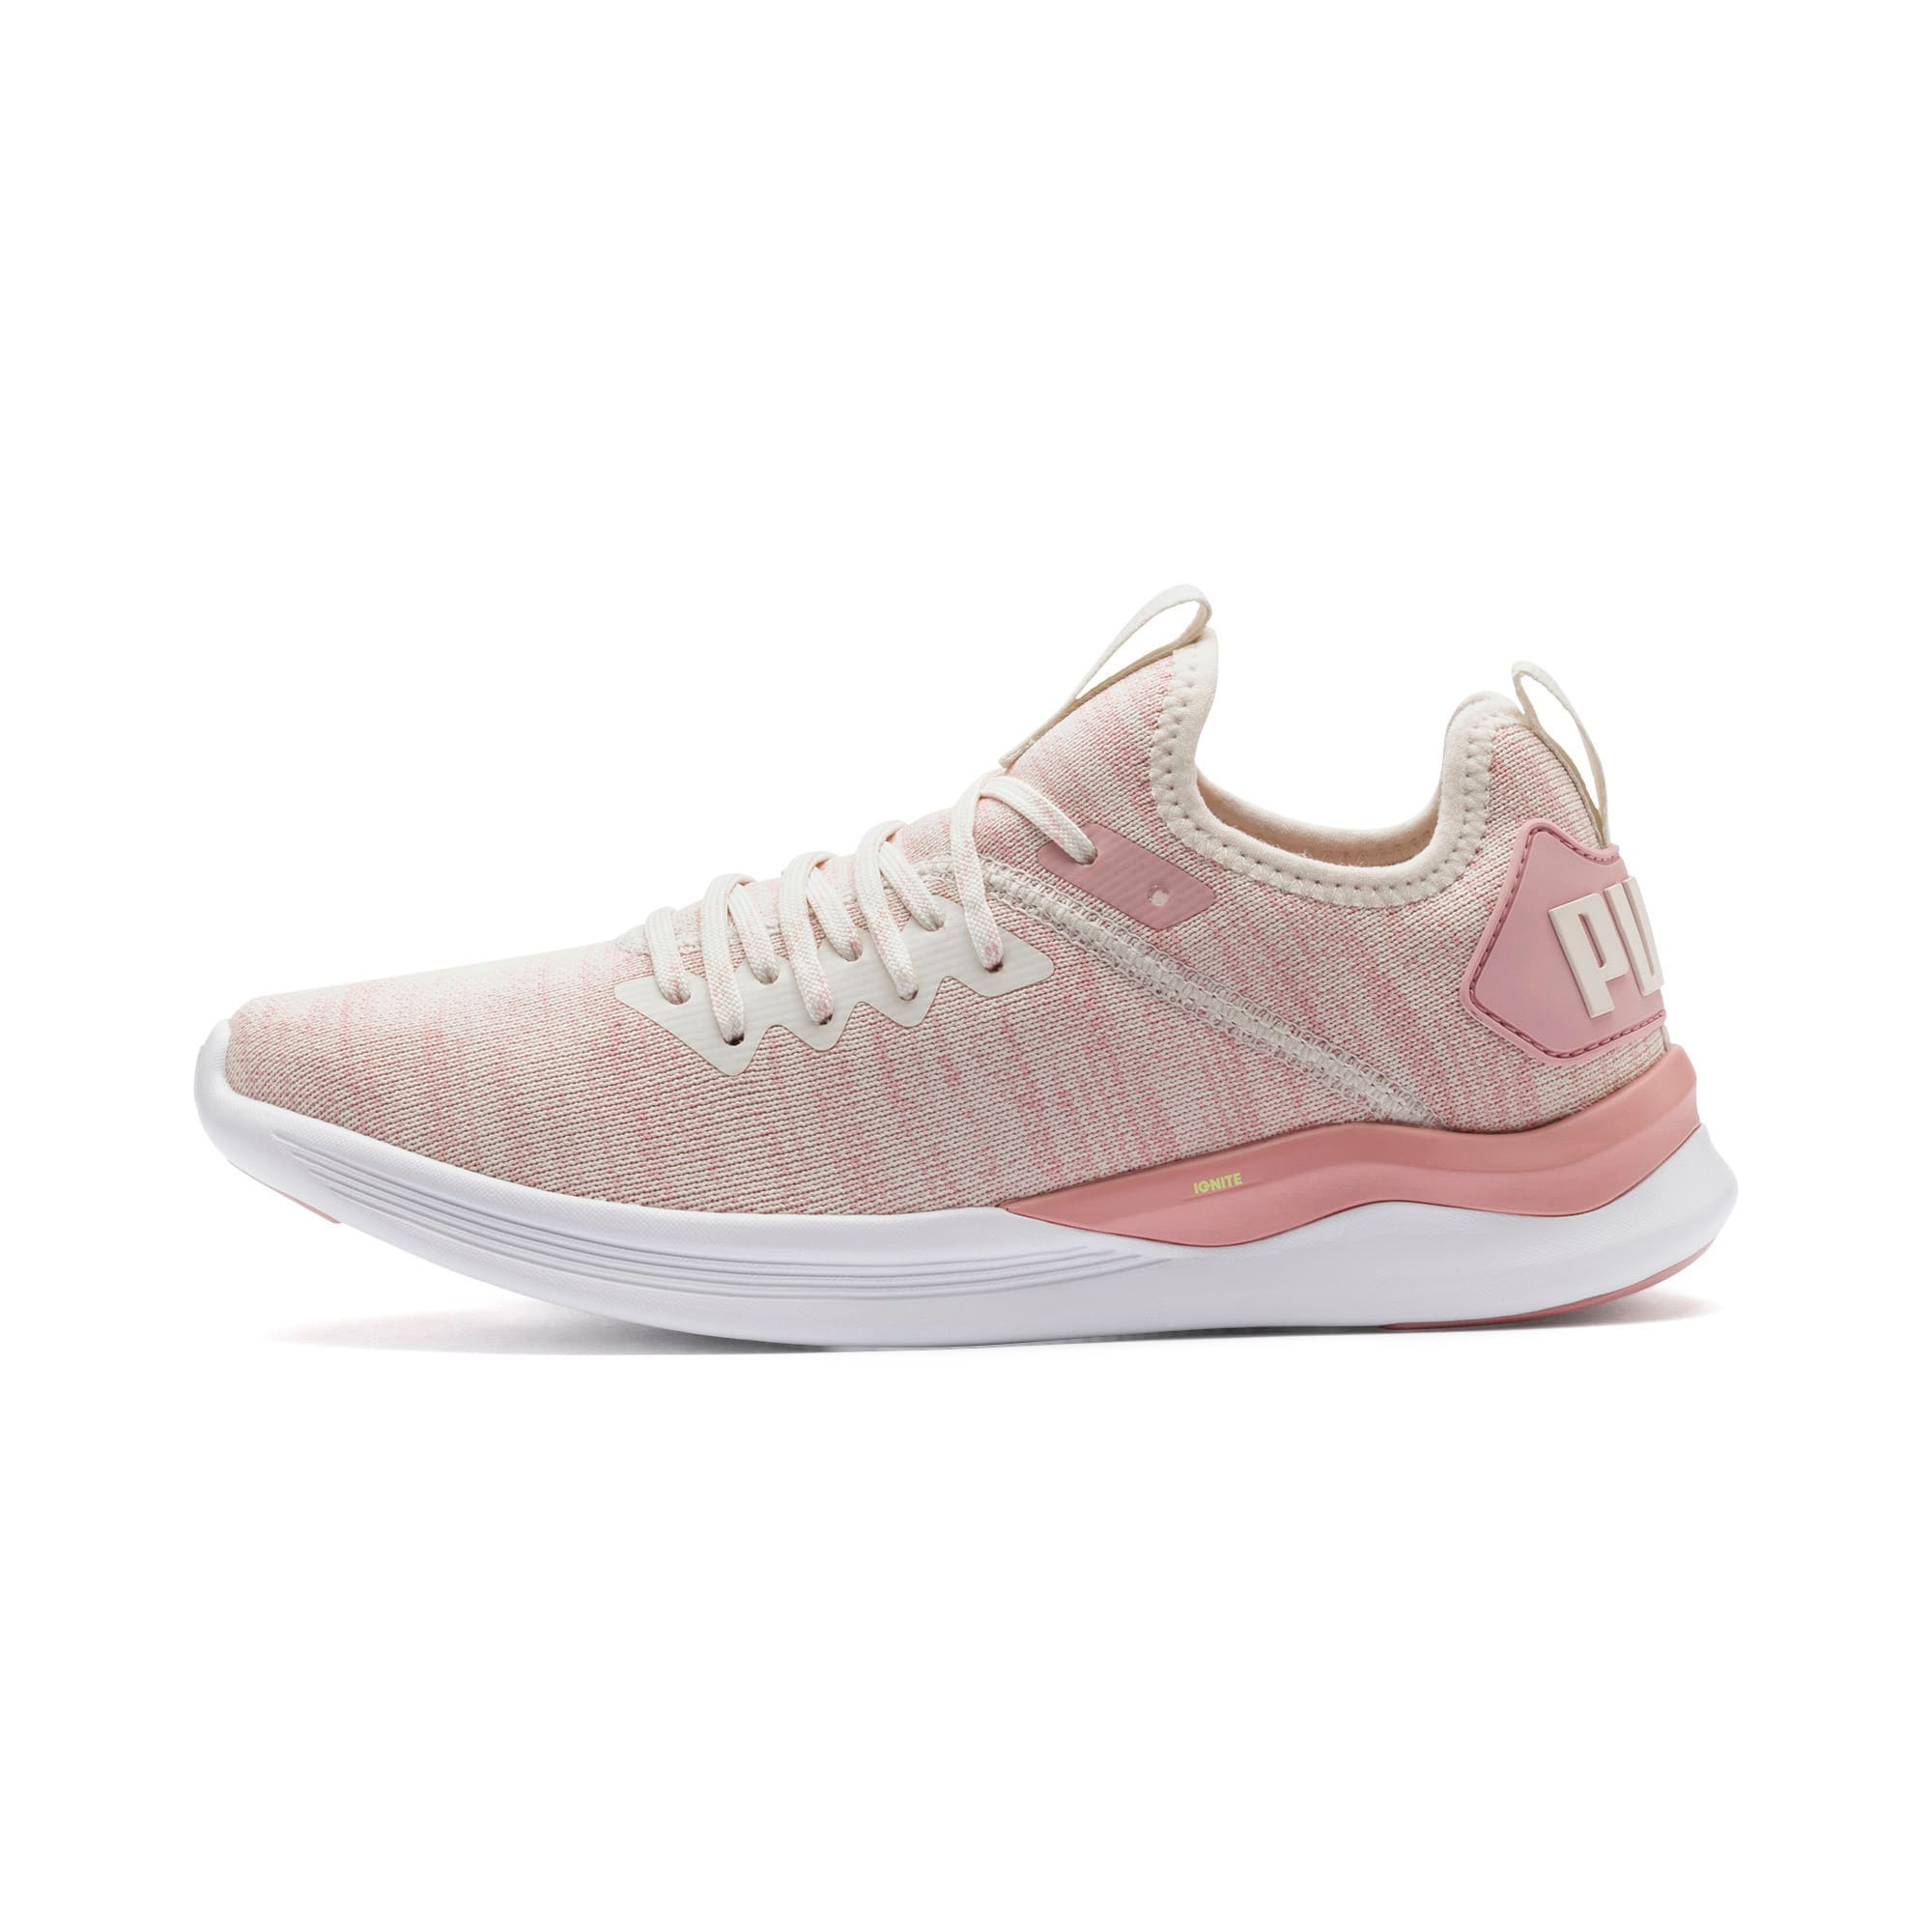 Thumbnail 1 of IGNITE Flash evoKNIT Women's Running Shoes, Pastel Parchment-Bridal Rose, medium